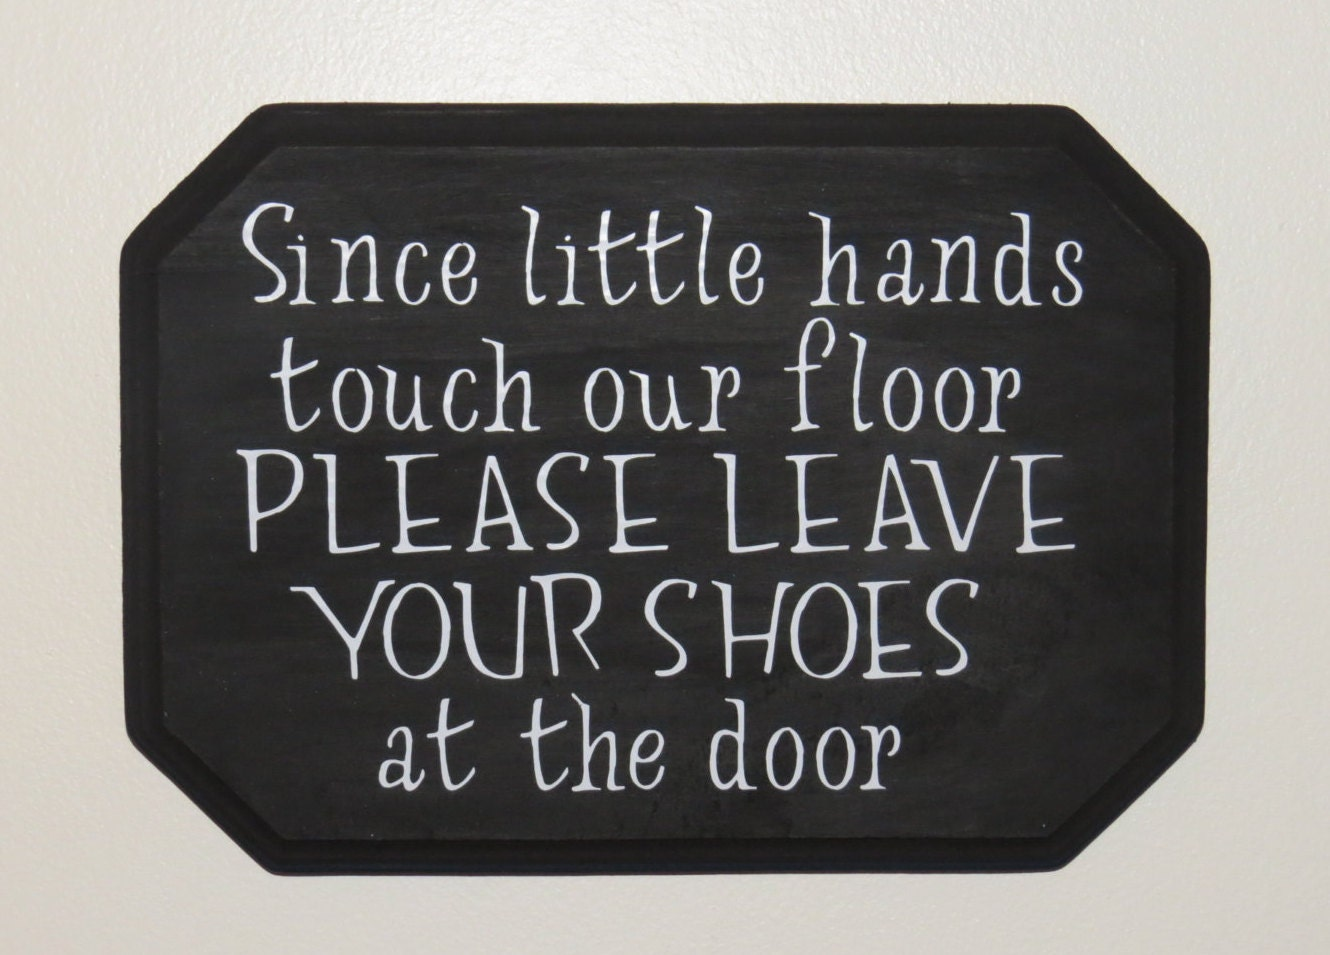 7ad29afe3a7e6 Since little hands touch our floor please leave your shoes at the door  sign, take shoes off sign, front door sign, leave shoes at door sign,